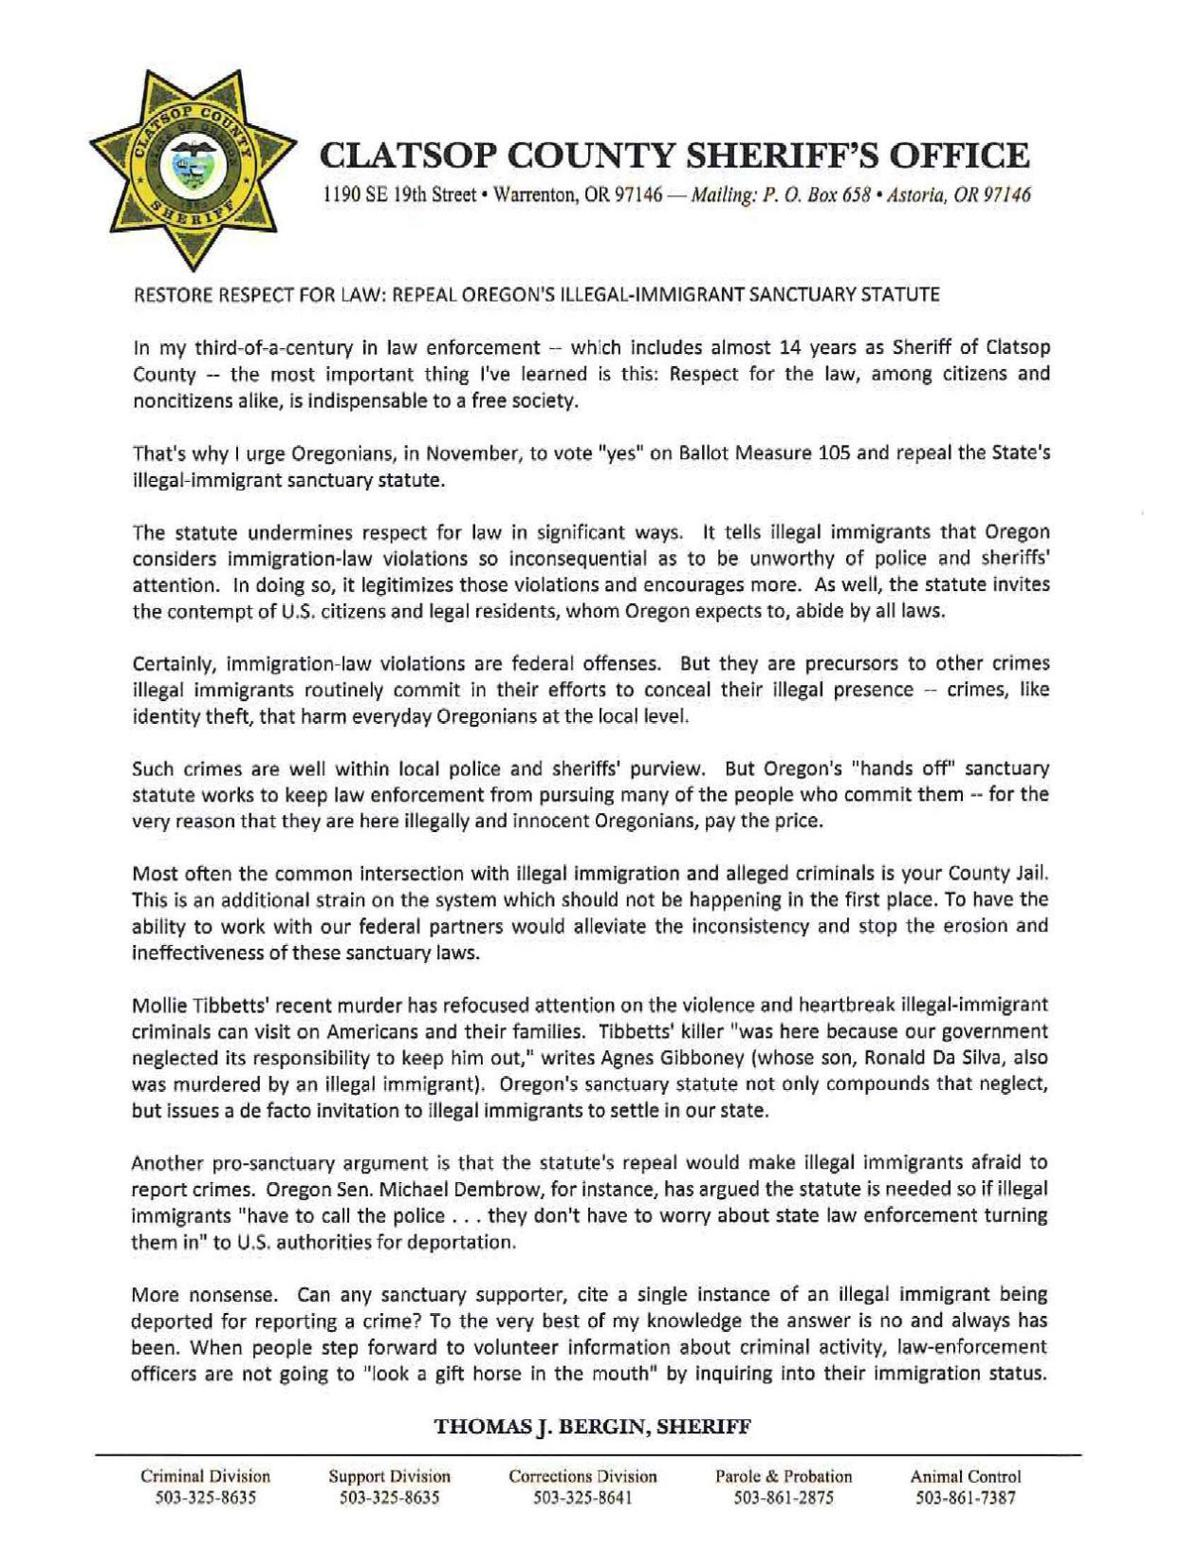 Kaber endorses letter from Clatsop Co  Sheriff's Office